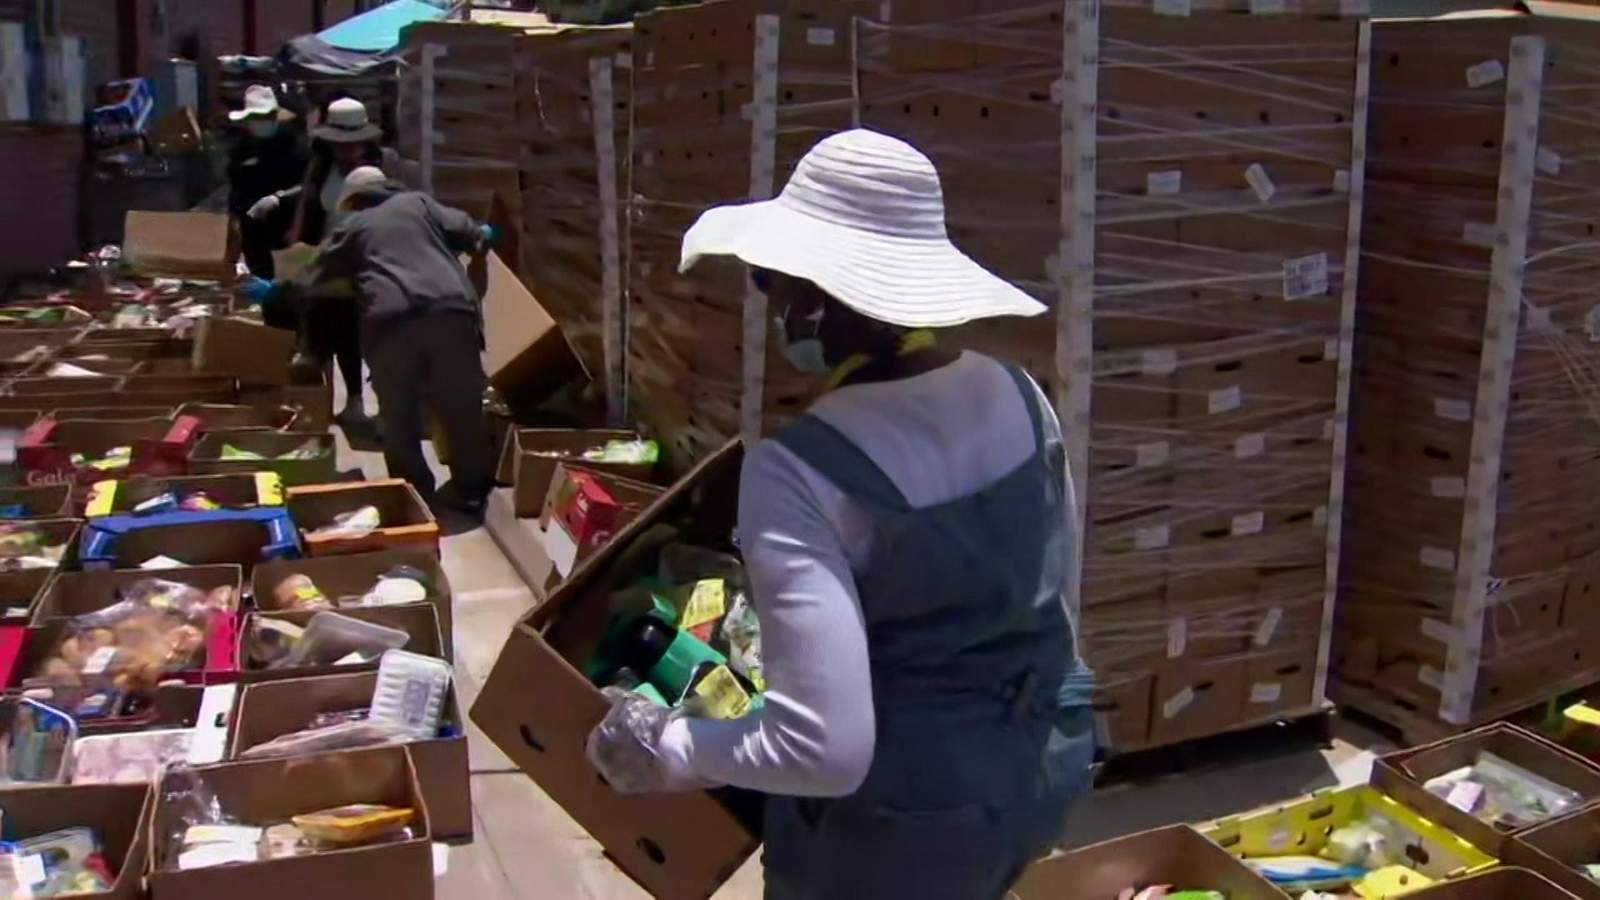 Landlord tells Sugar Land church stop food distribution due to traffic 'nuisance' or be placed in default of lease